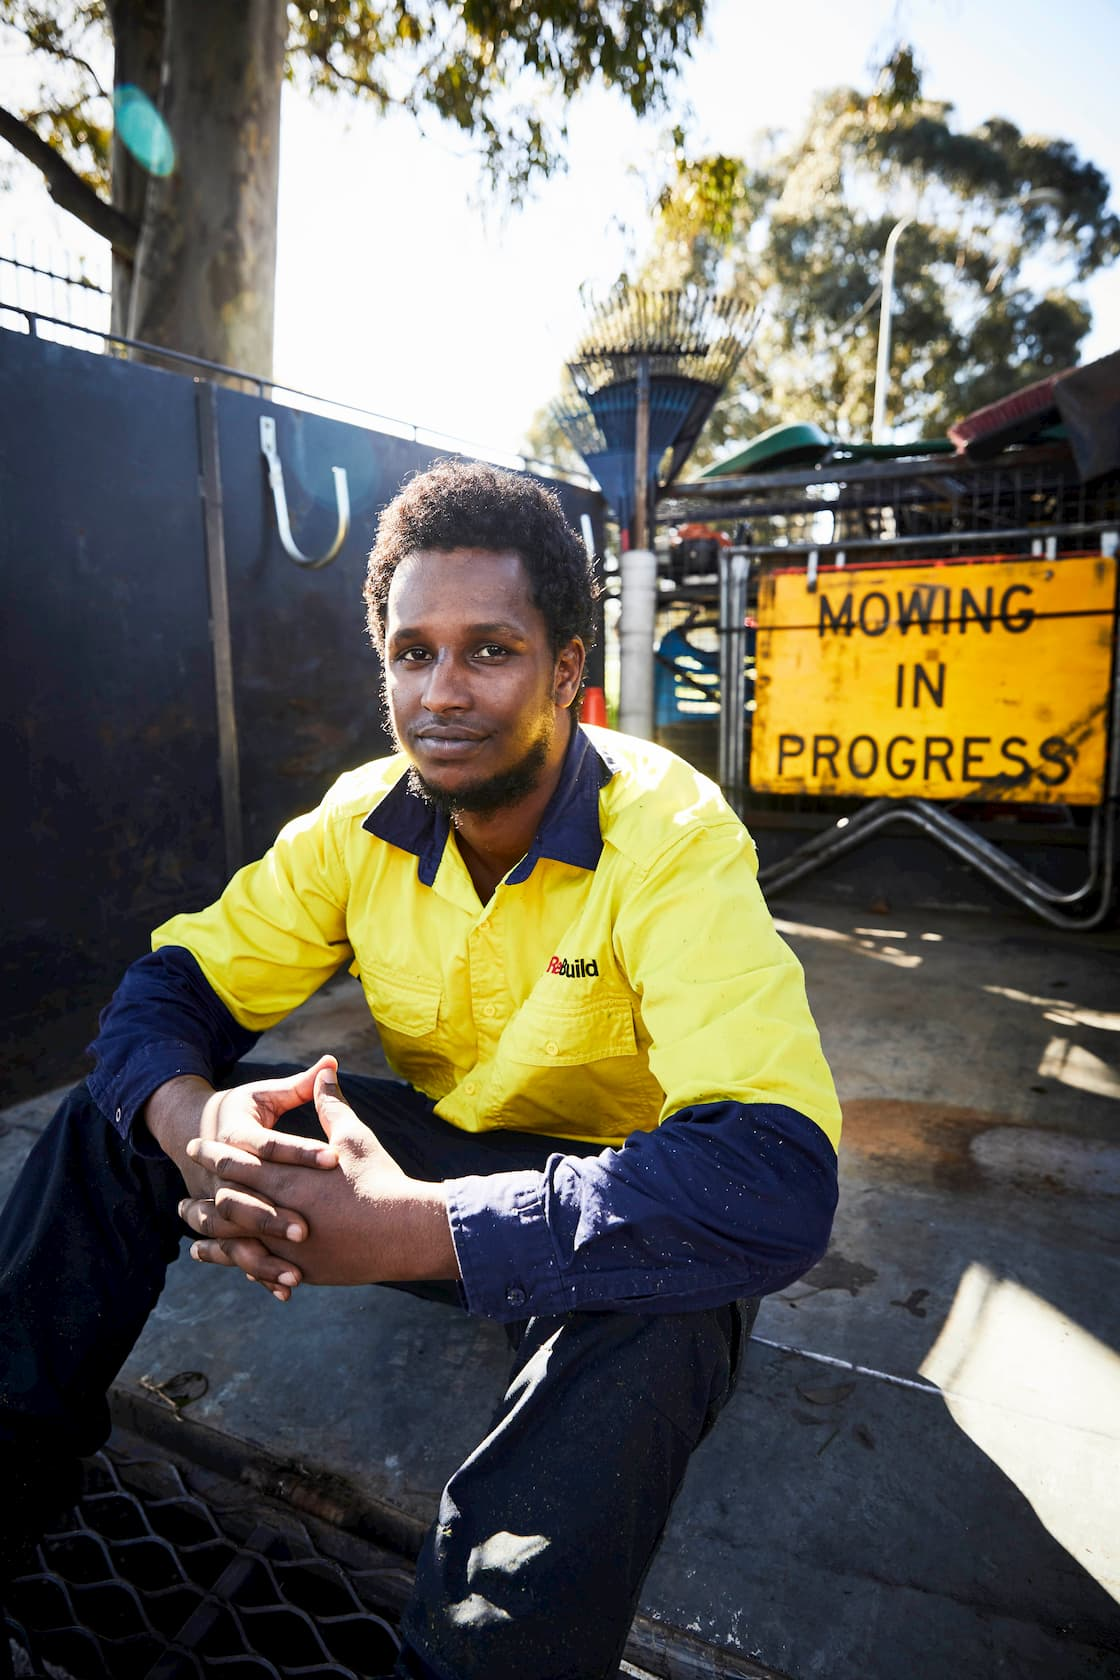 A man sitting alongside fencing and signs in work clothing.